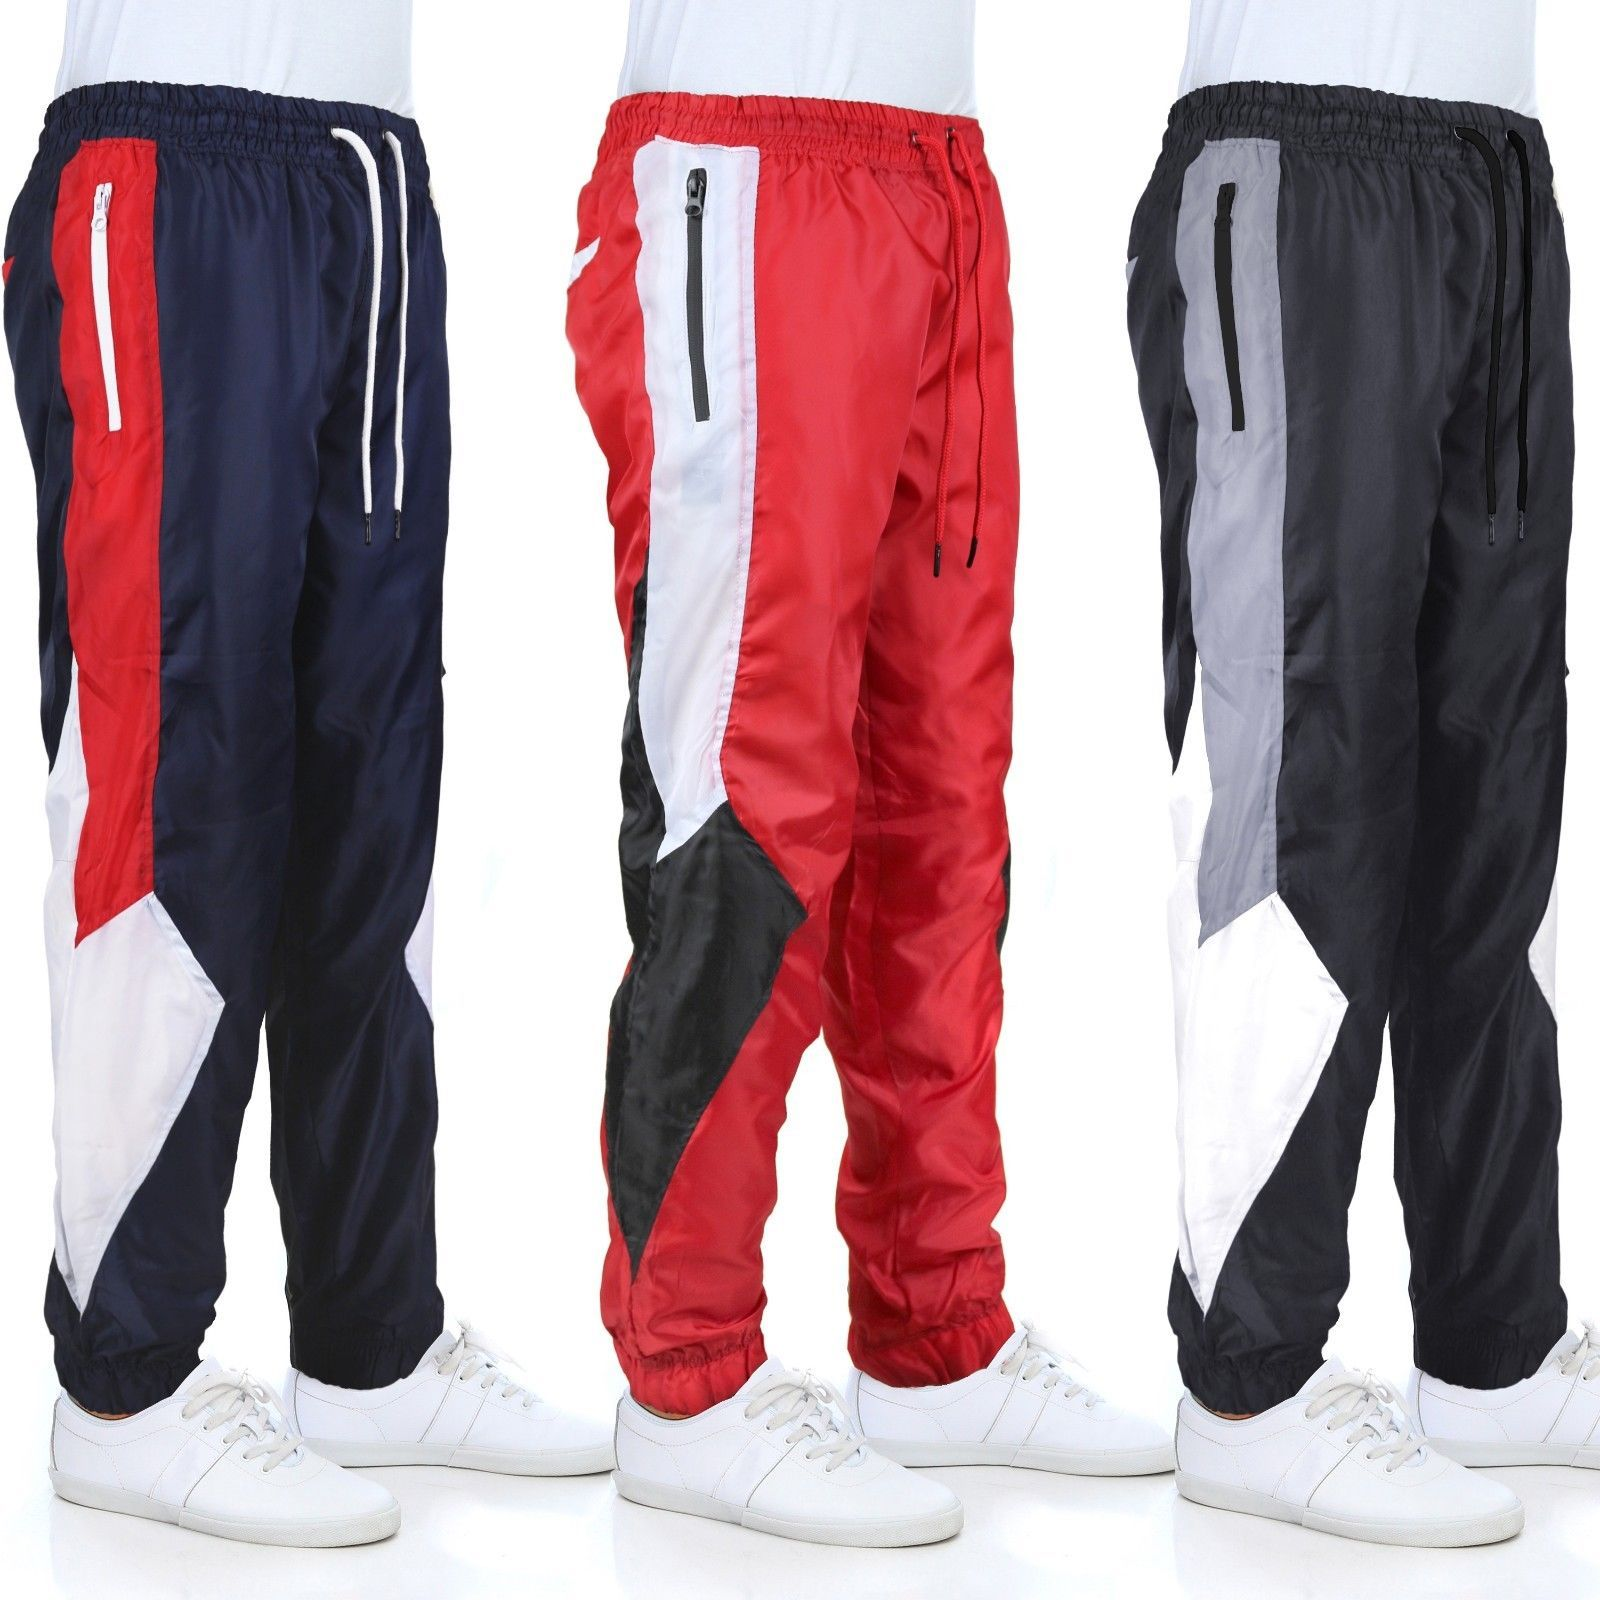 LR Men's Retro Urban Lightweight Athletic Casual Striped Gym Track Sweat Pants